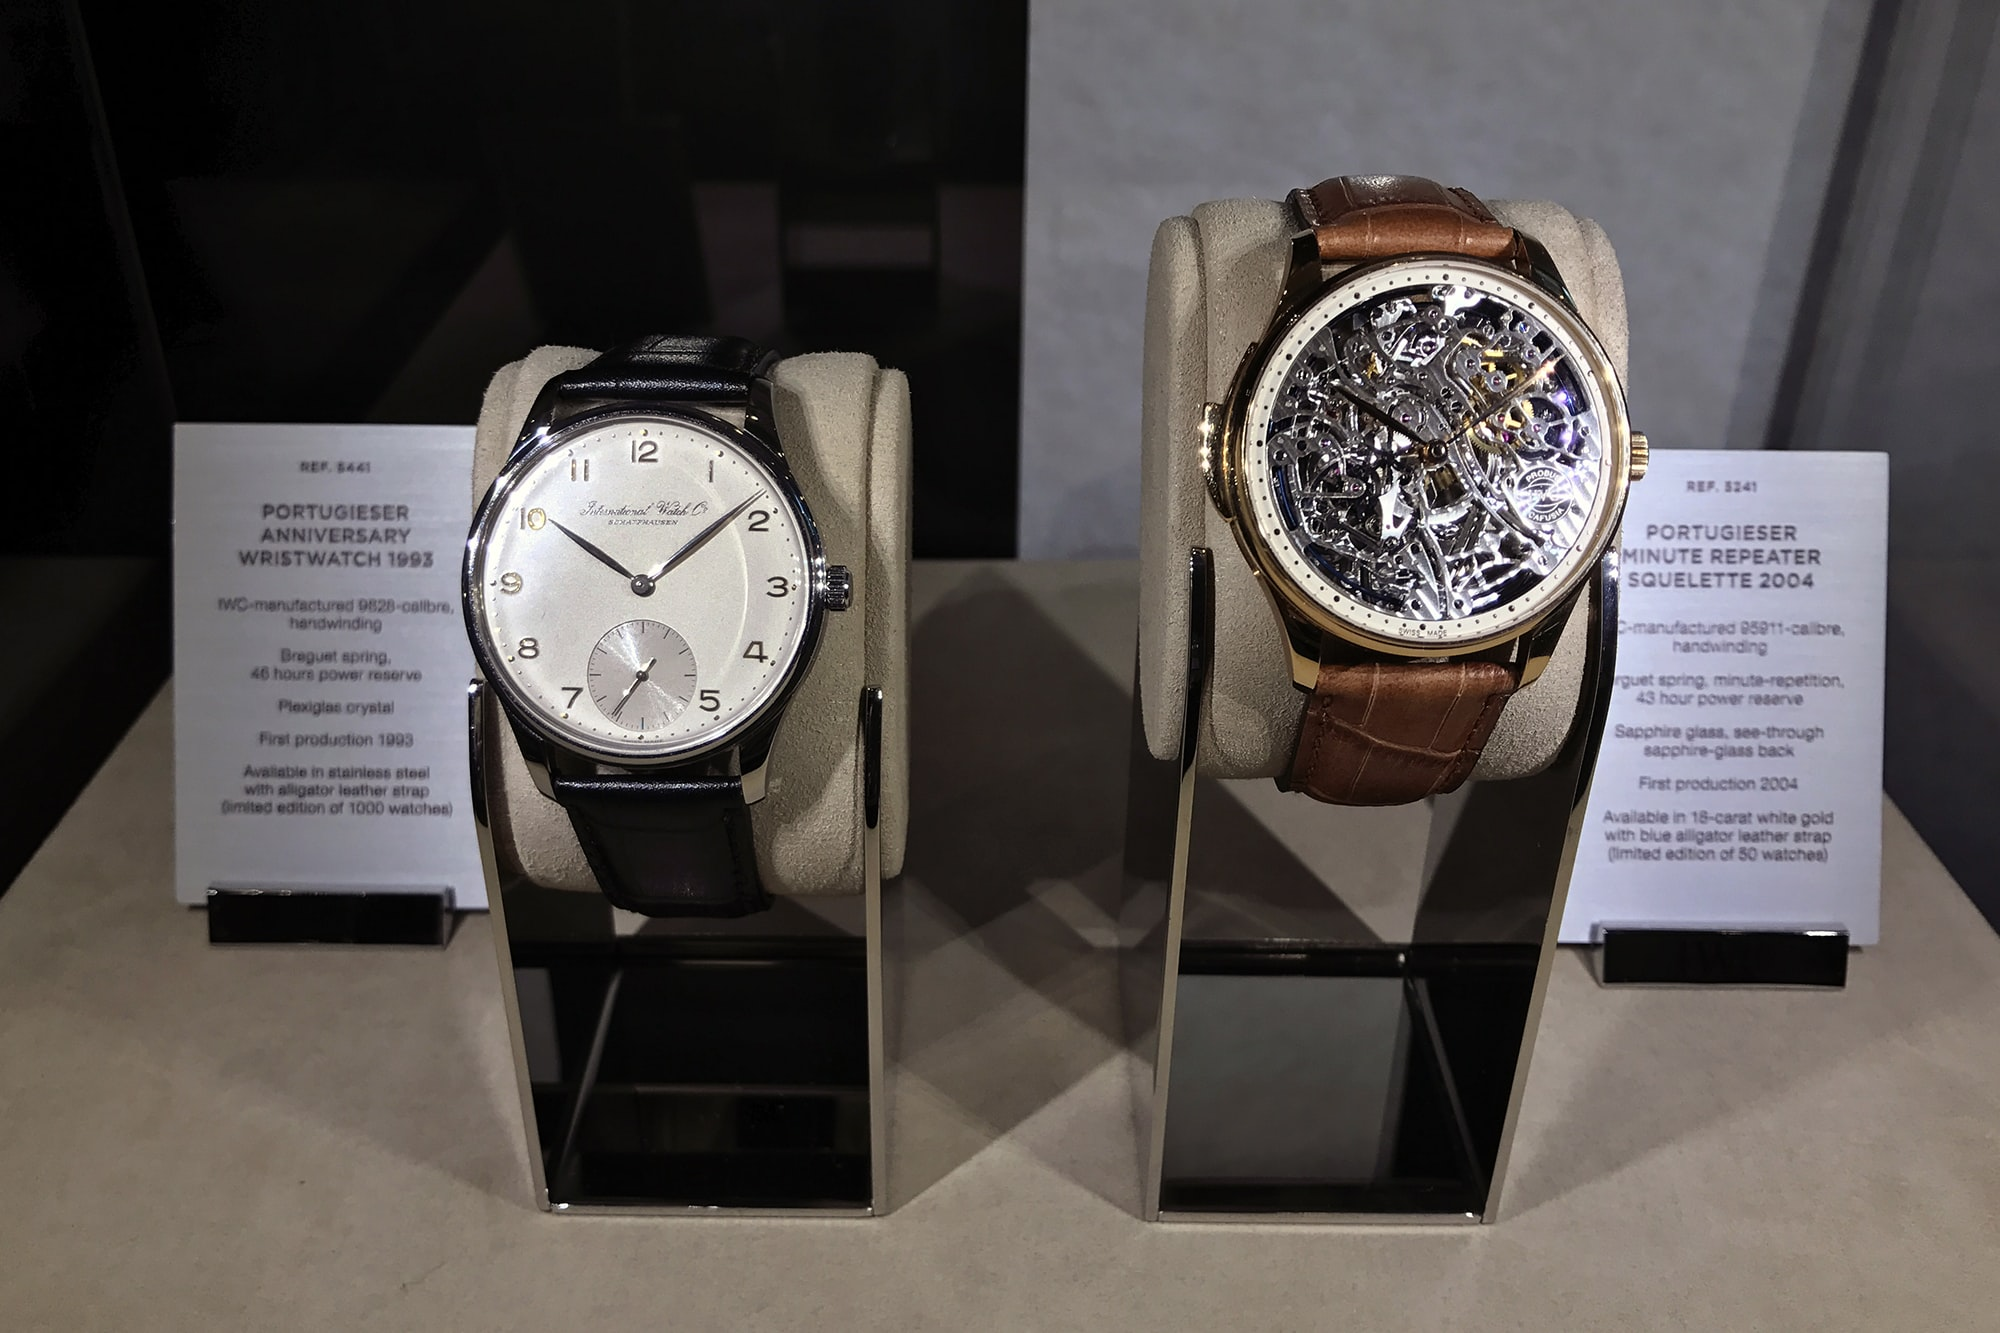 Photo Report: HODINKEE And IWC Celebrate The Portugieser Hand-Wound Tourbillion Edition 'D.H. Craig USA' In New York Photo Report: HODINKEE And IWC Celebrate The Portugieser Hand-Wound Tourbillion Edition 'D.H. Craig USA' In New York 0137 copy